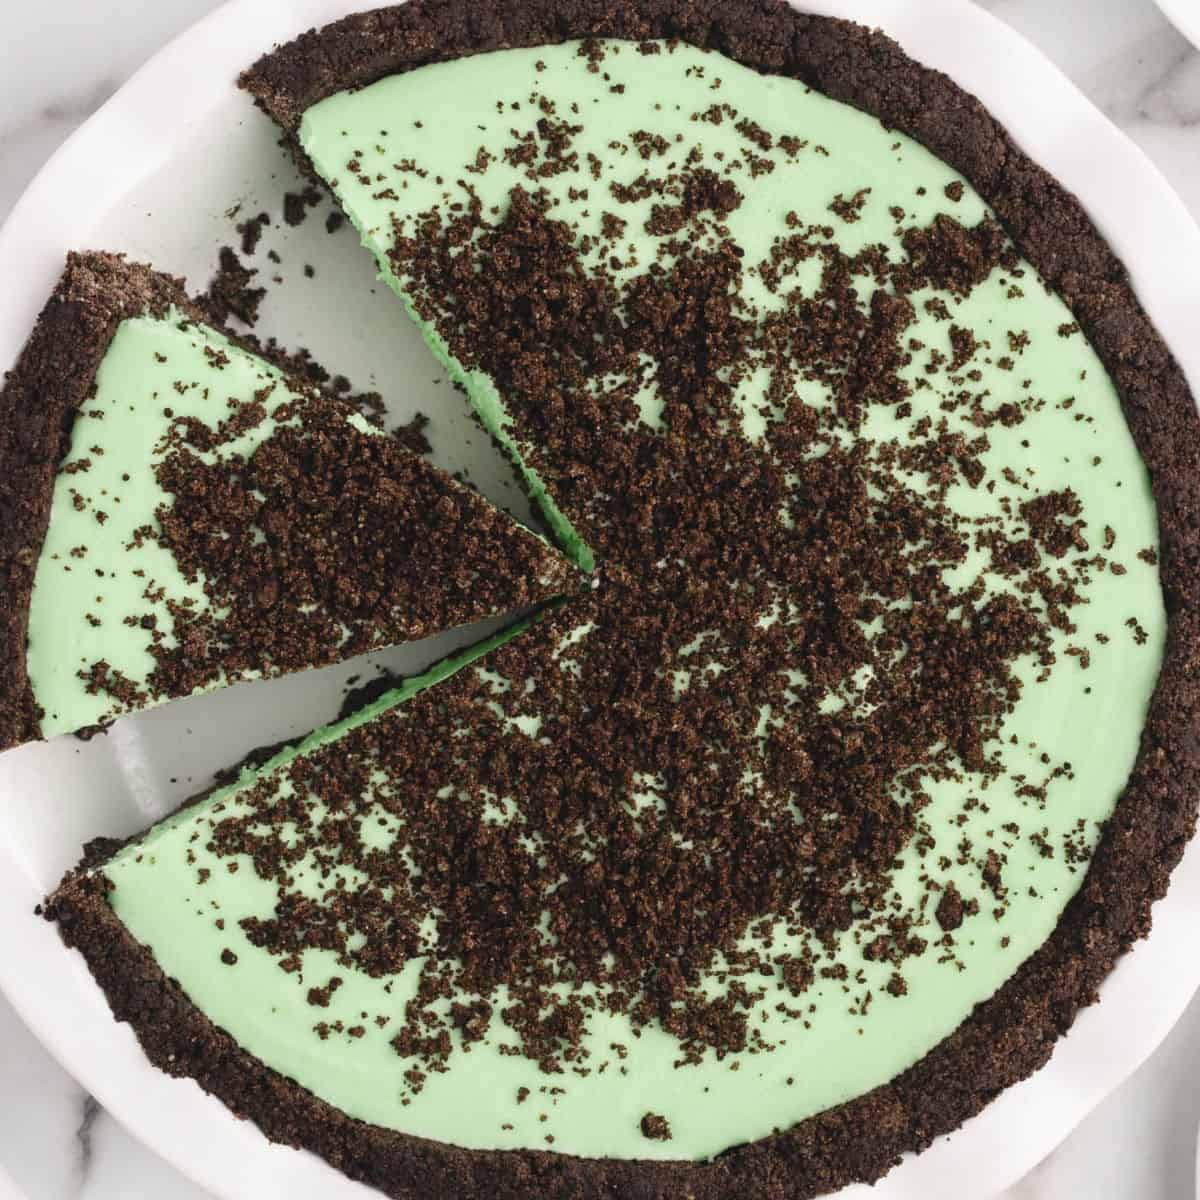 square image of a grasshopper pie with a slice cut out